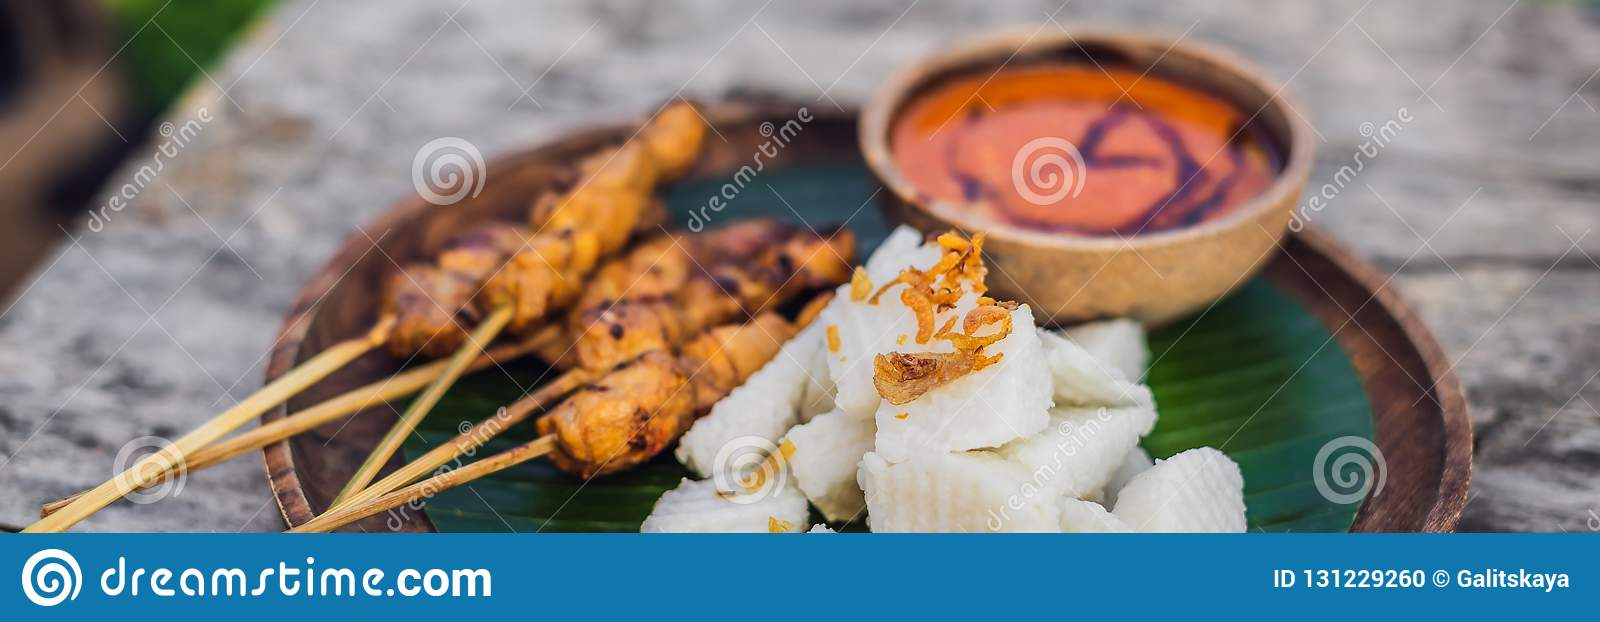 Indonesian Chicken Satay Or Sate Ayam Served With Lontong Soy Sauce And Peanut Sauce Lifestyle Food Banner Long Format Stock Photo Image Of Java Hari 131229260